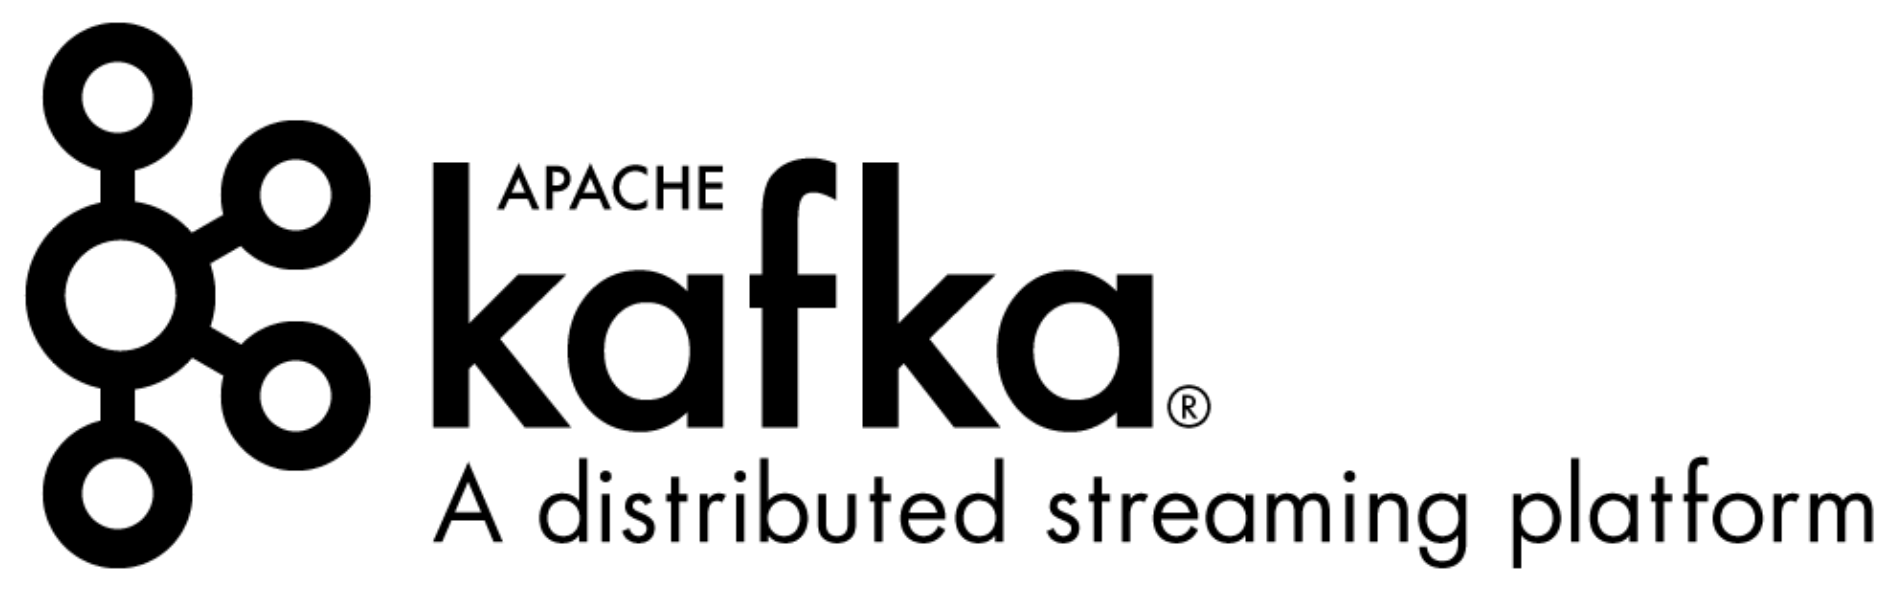 Unosquare's Apache Kafka Review, Use Cases & More